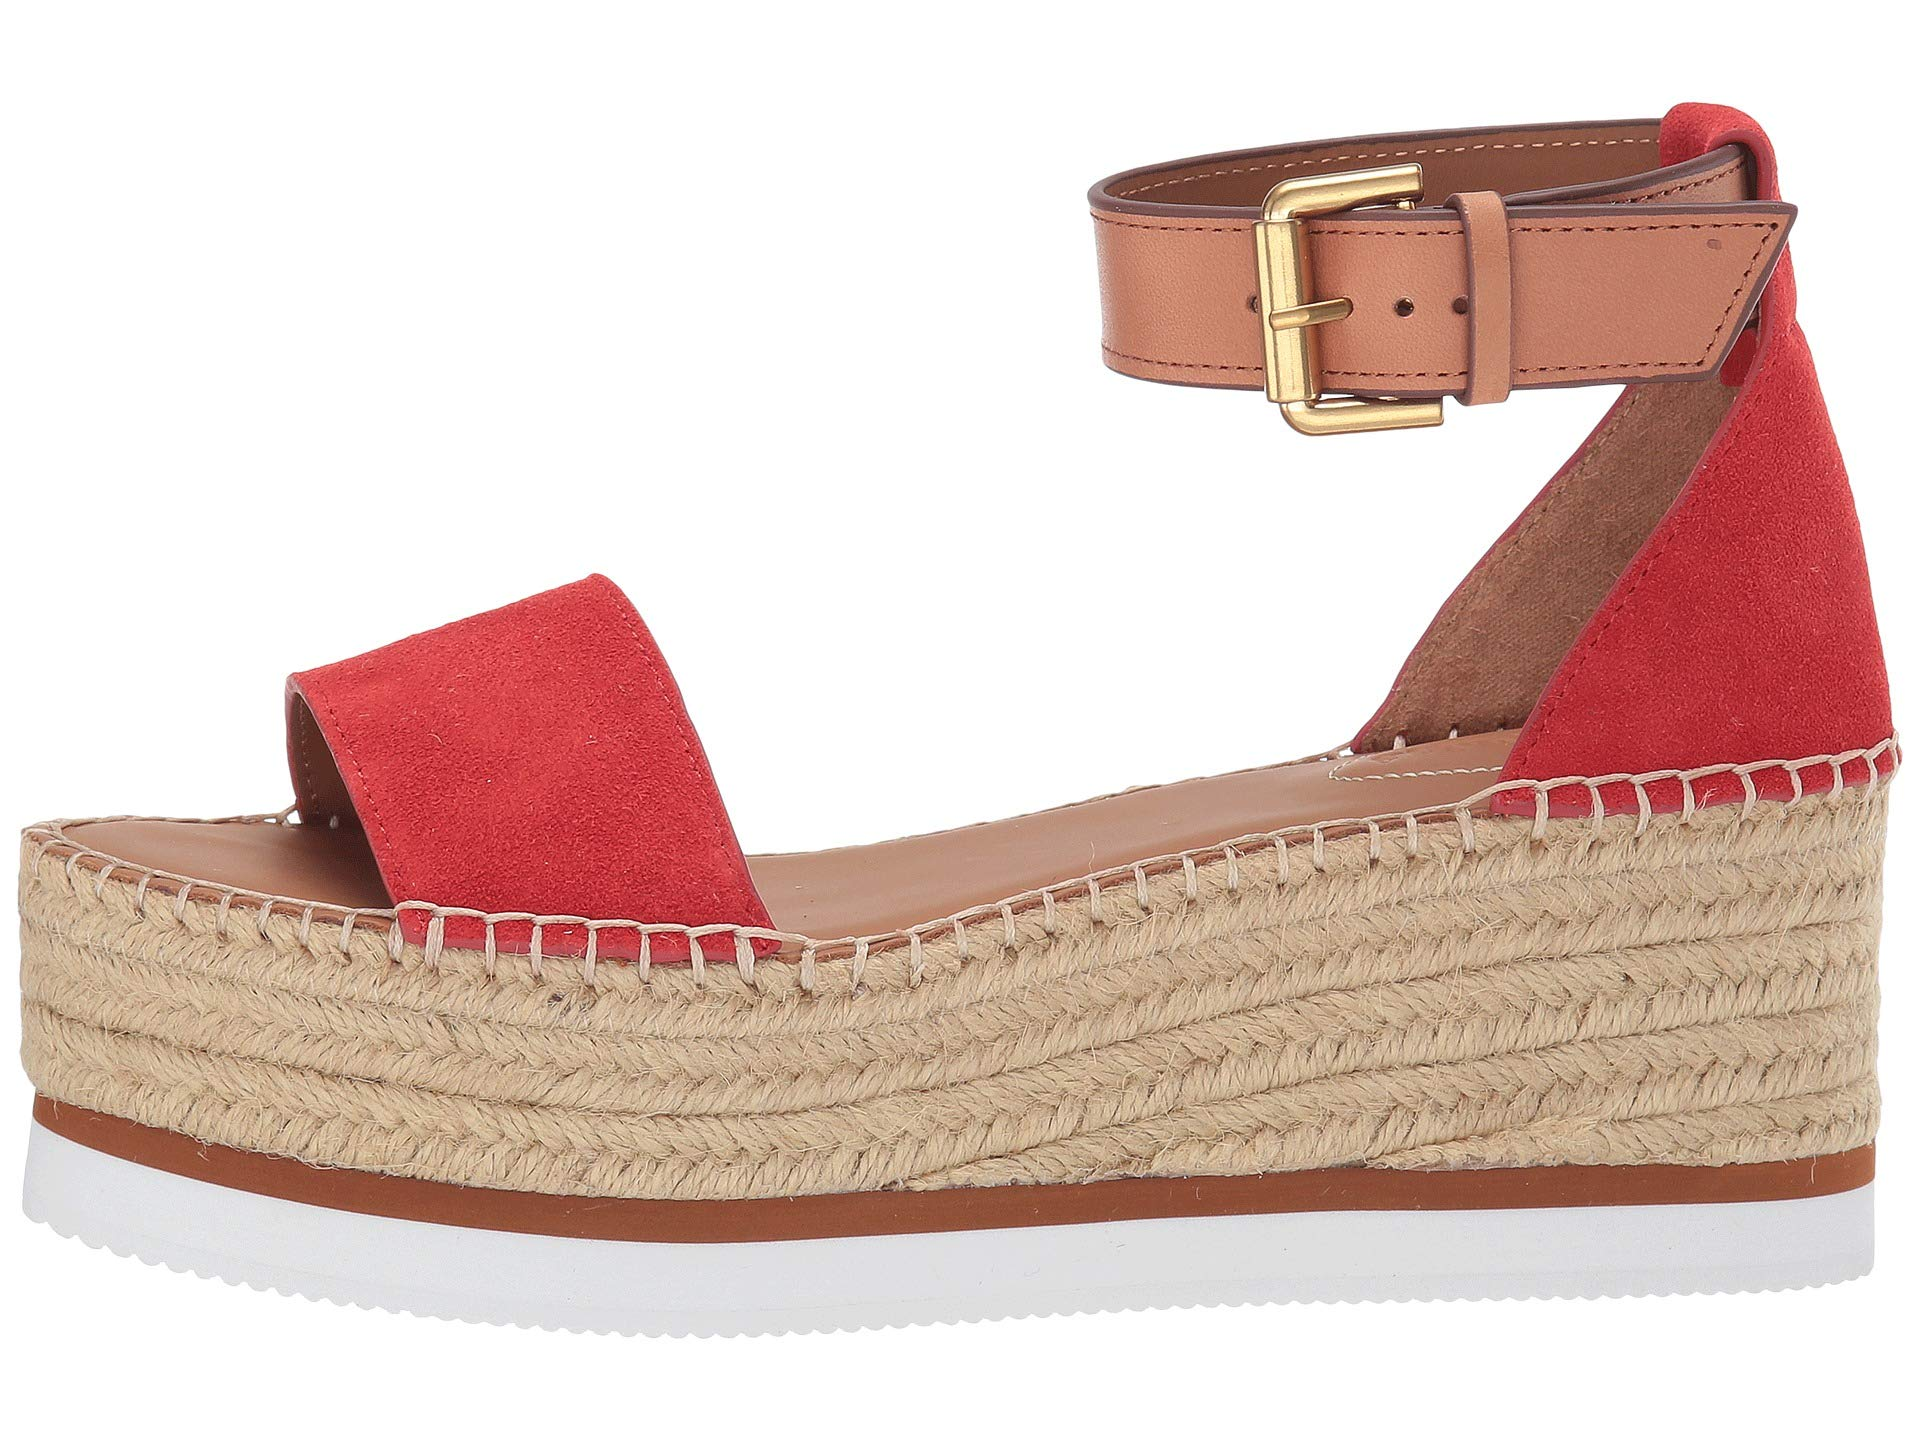 Espadrilles See Chloé Sb32201a By See Espadrilles 6g7bfy